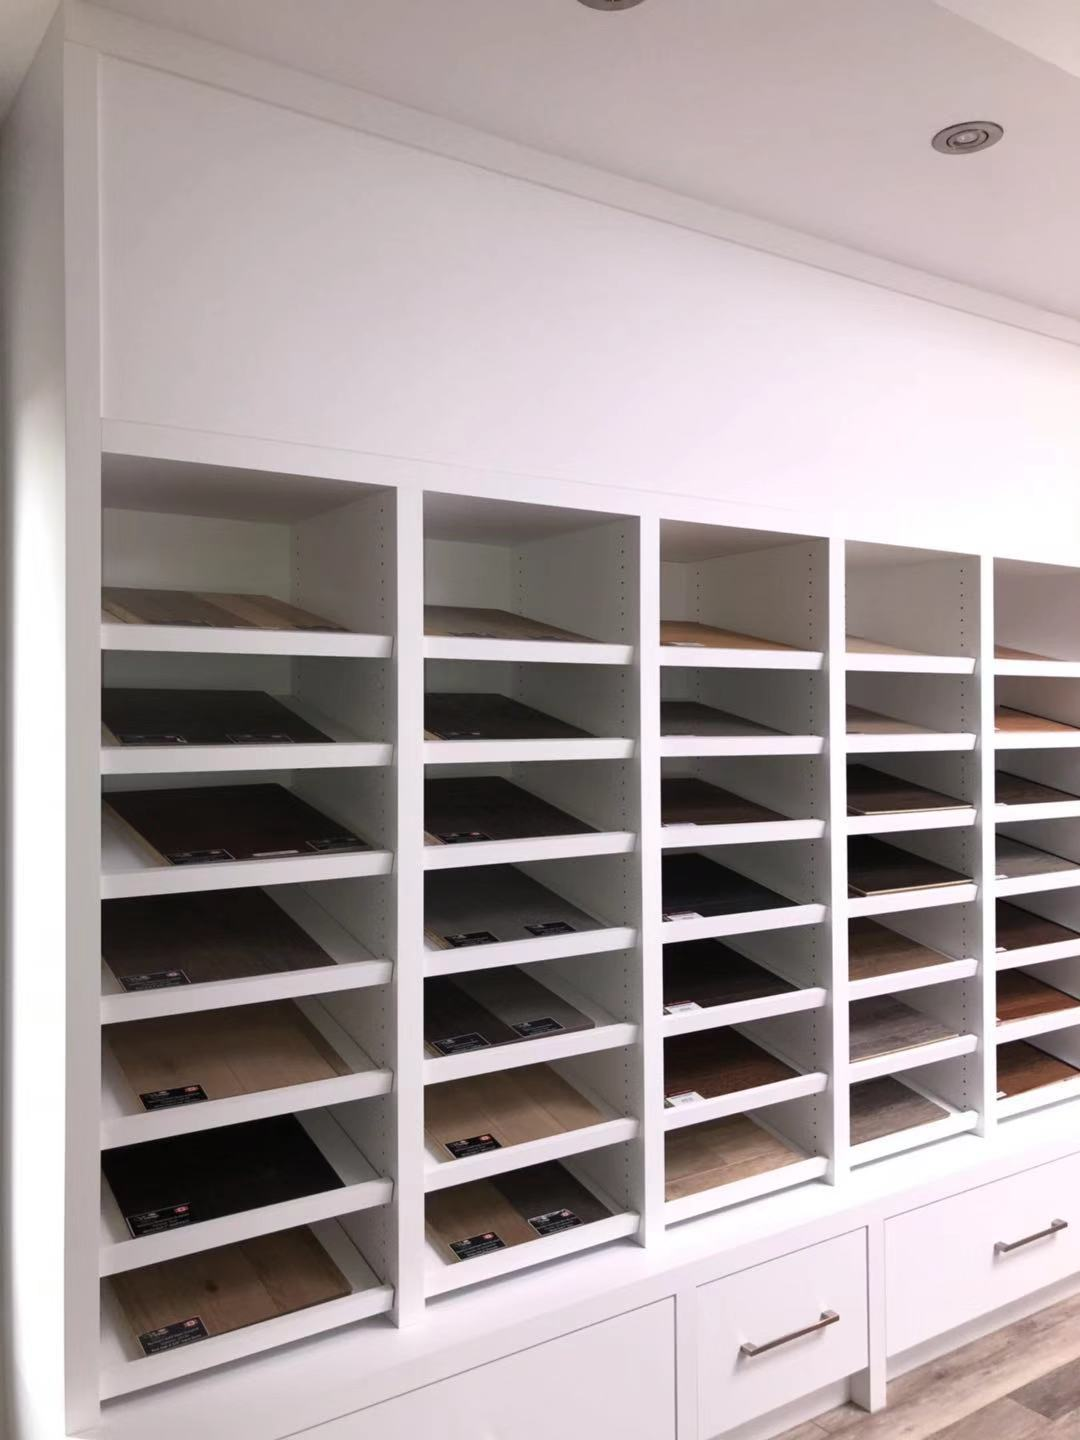 Divided Display Shelve Unit with Bottom Pull Out Drawers